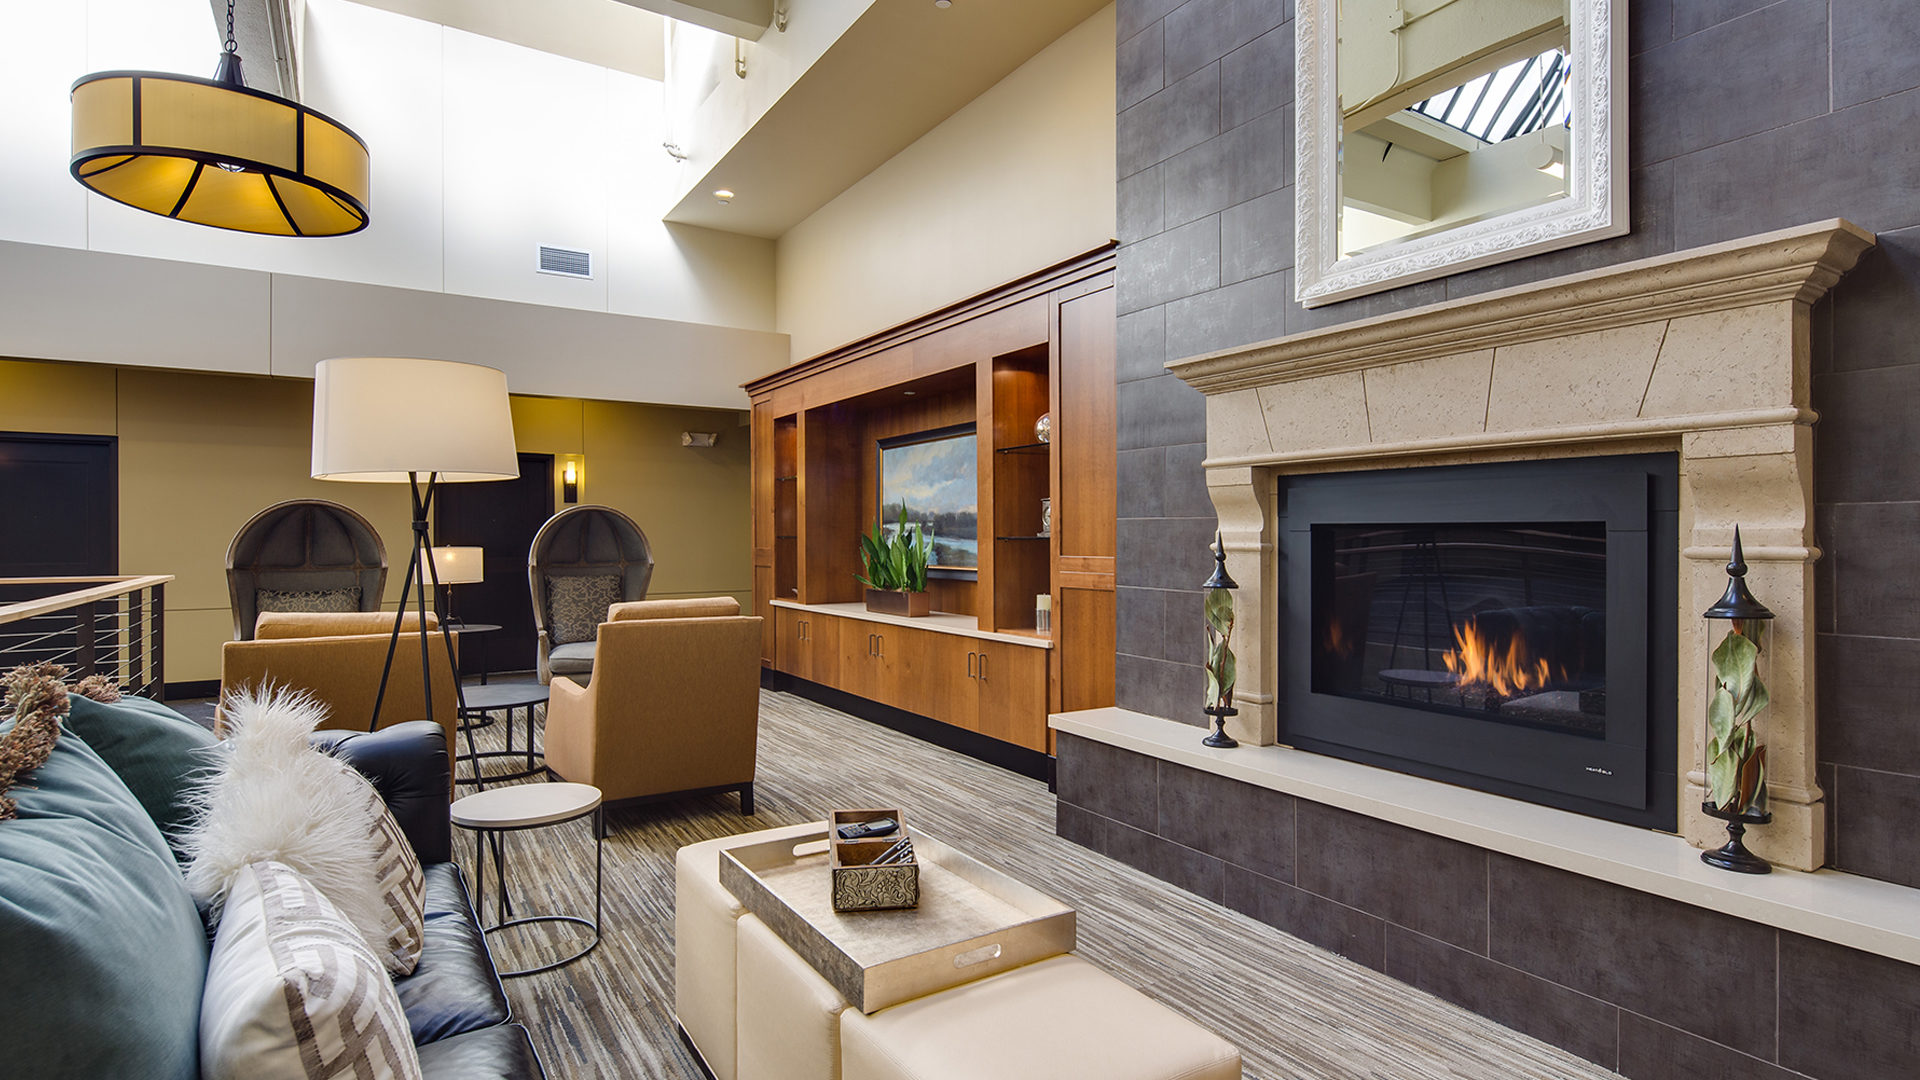 430 Oak Grove Apartments_Interior Lobby with fireplace